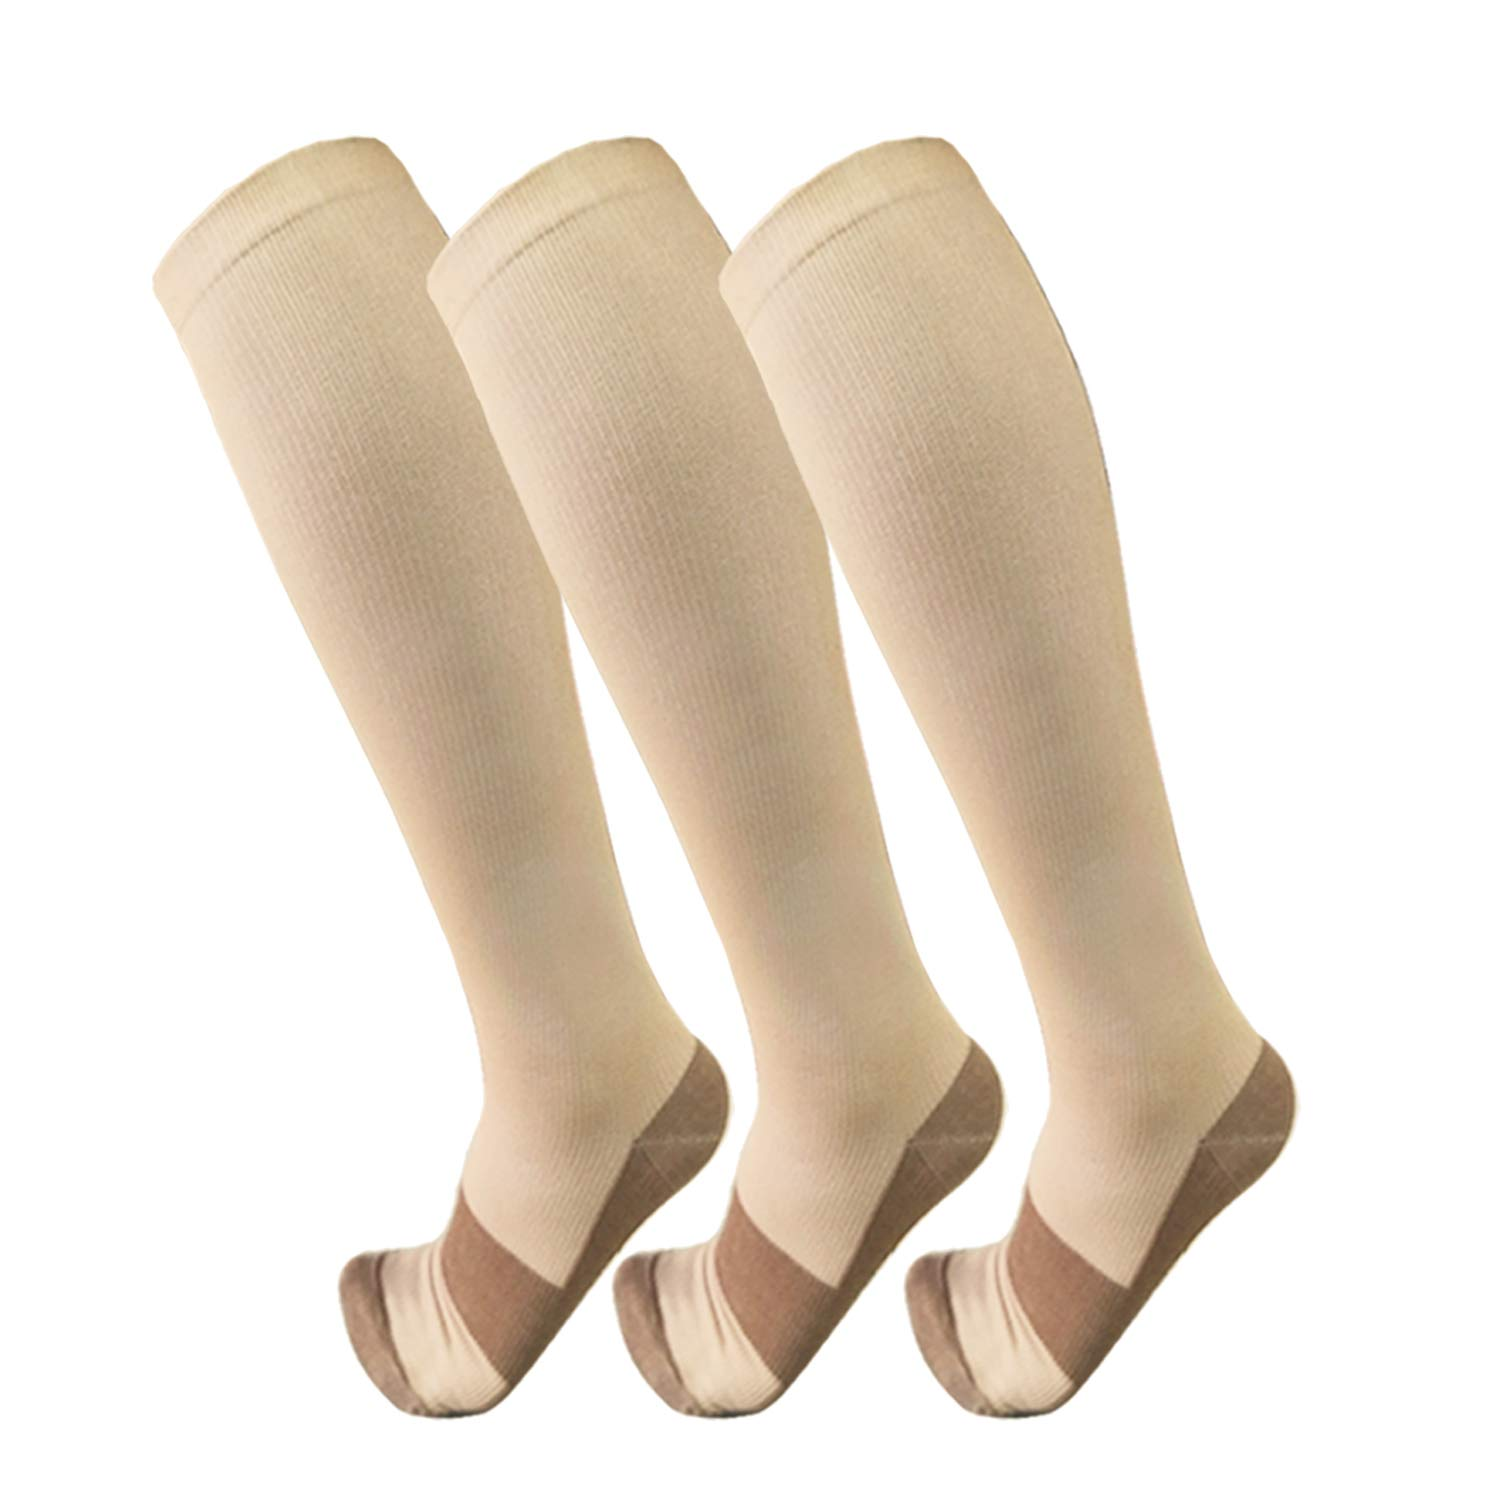 Copper Compression Socks For Men & Women(3 Pairs)- Best For Running,Athletic,Medical,Pregnancy and Travel -15-20mmHg (S/M, Nude)